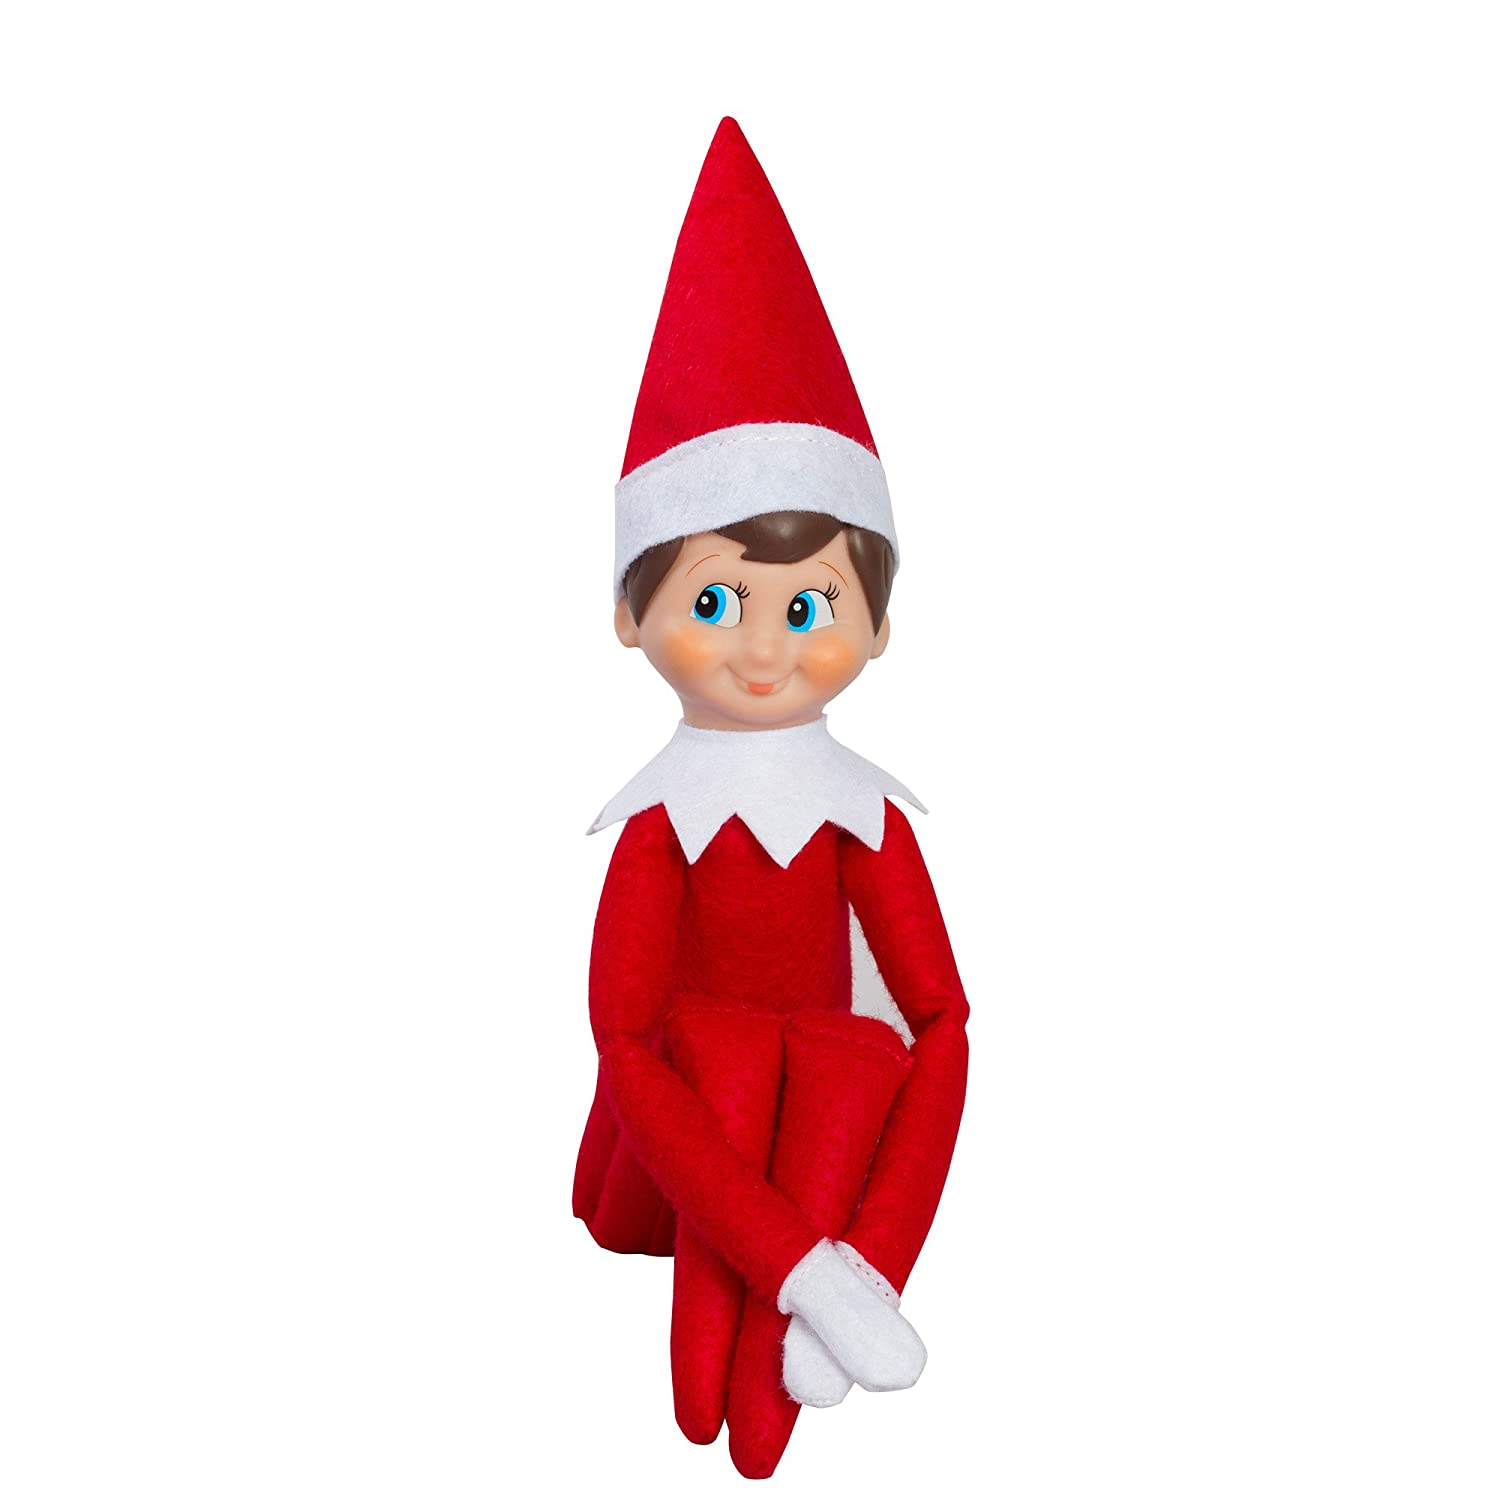 Elf On The Shelf: Santa's Secret Police